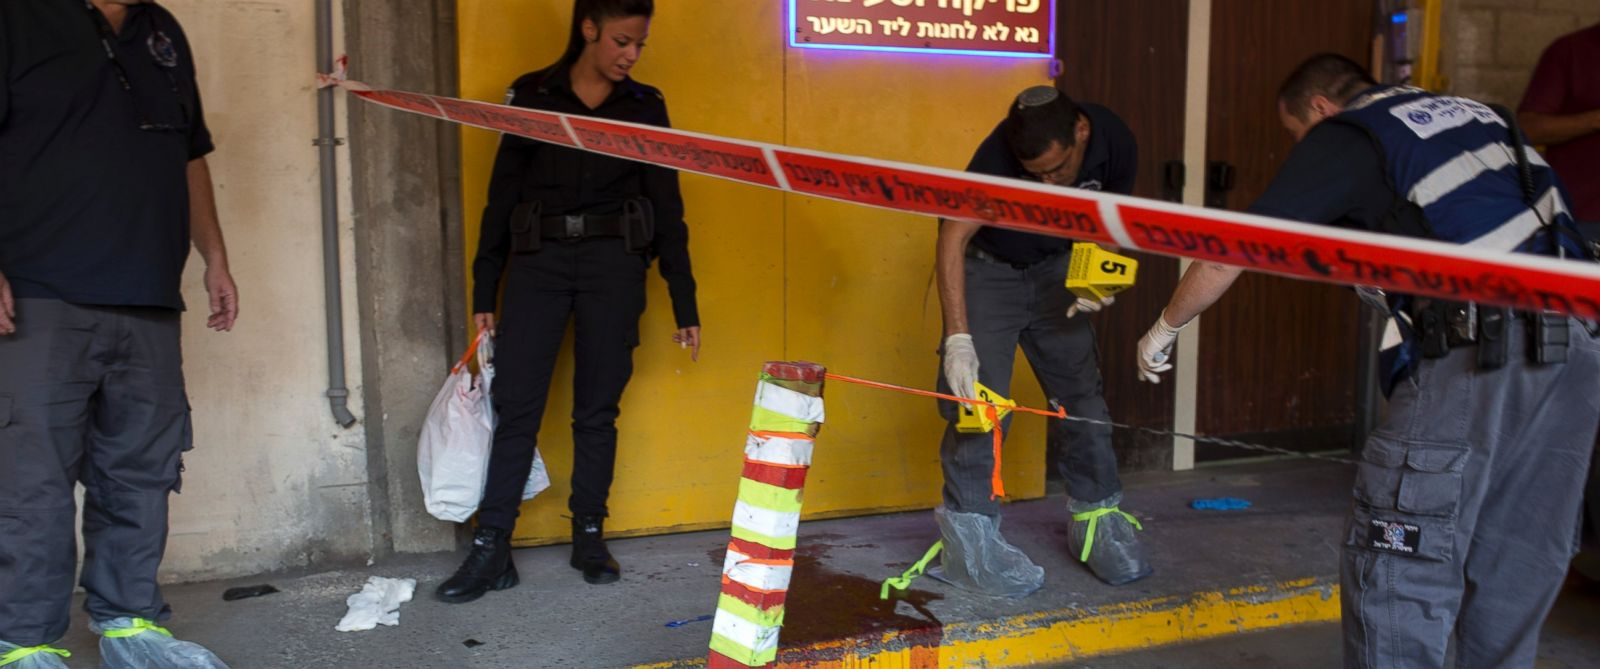 PHOTO: Israeli police investigates the scene of an stabbing attack in Tel Aviv, Israel, Nov. 19, 2015.